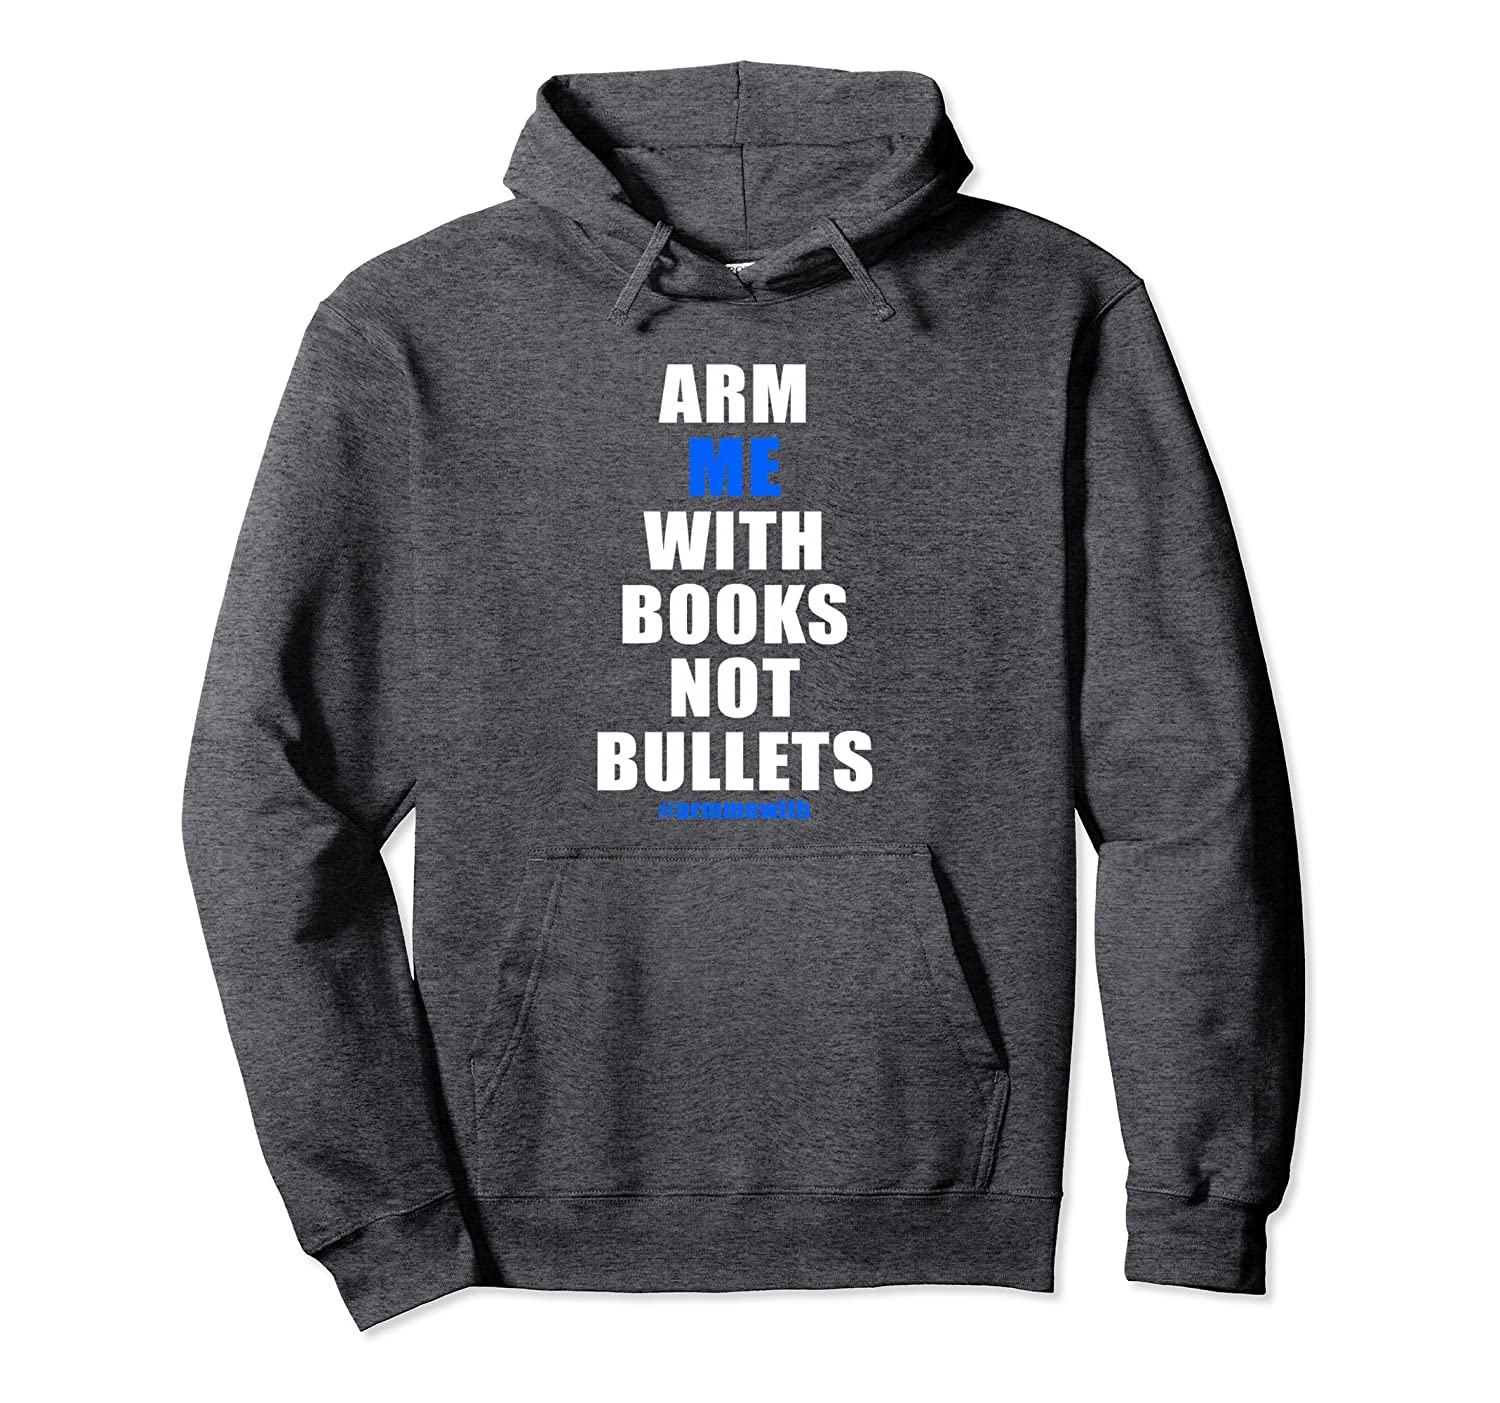 #ArmMeWith Teacher Hoodie Arm Me With Books Not Bullets-ah my shirt one gift